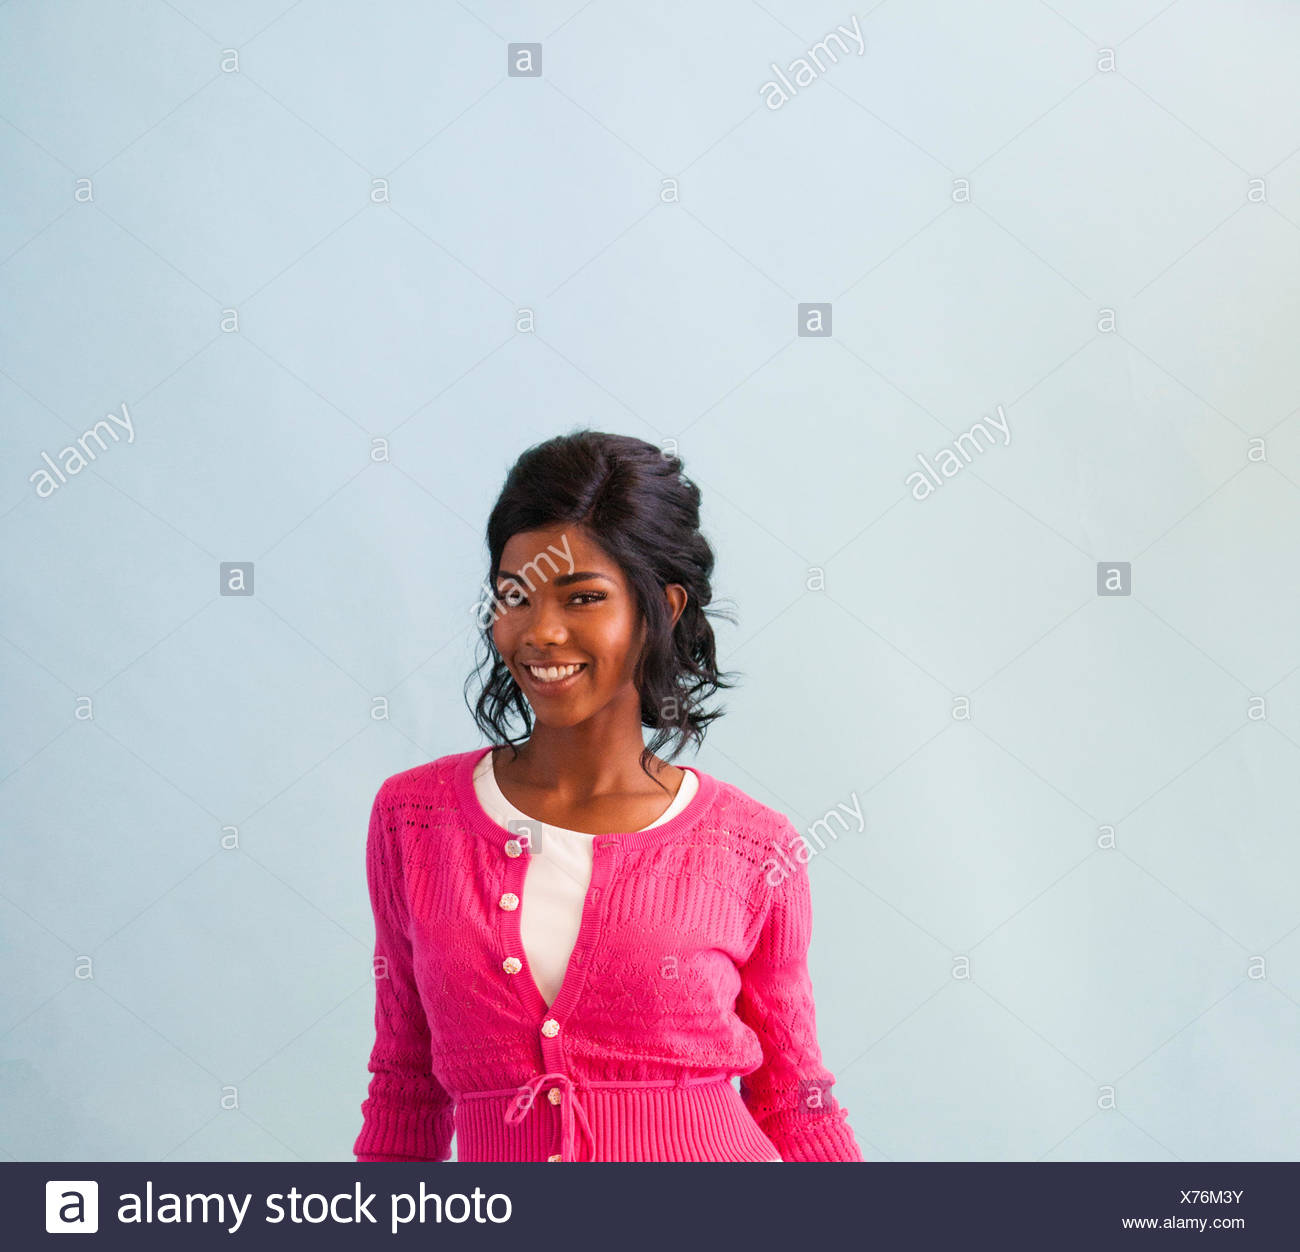 Studio portrait of smiling mid adult woman wearing pink cardigan - Stock Image